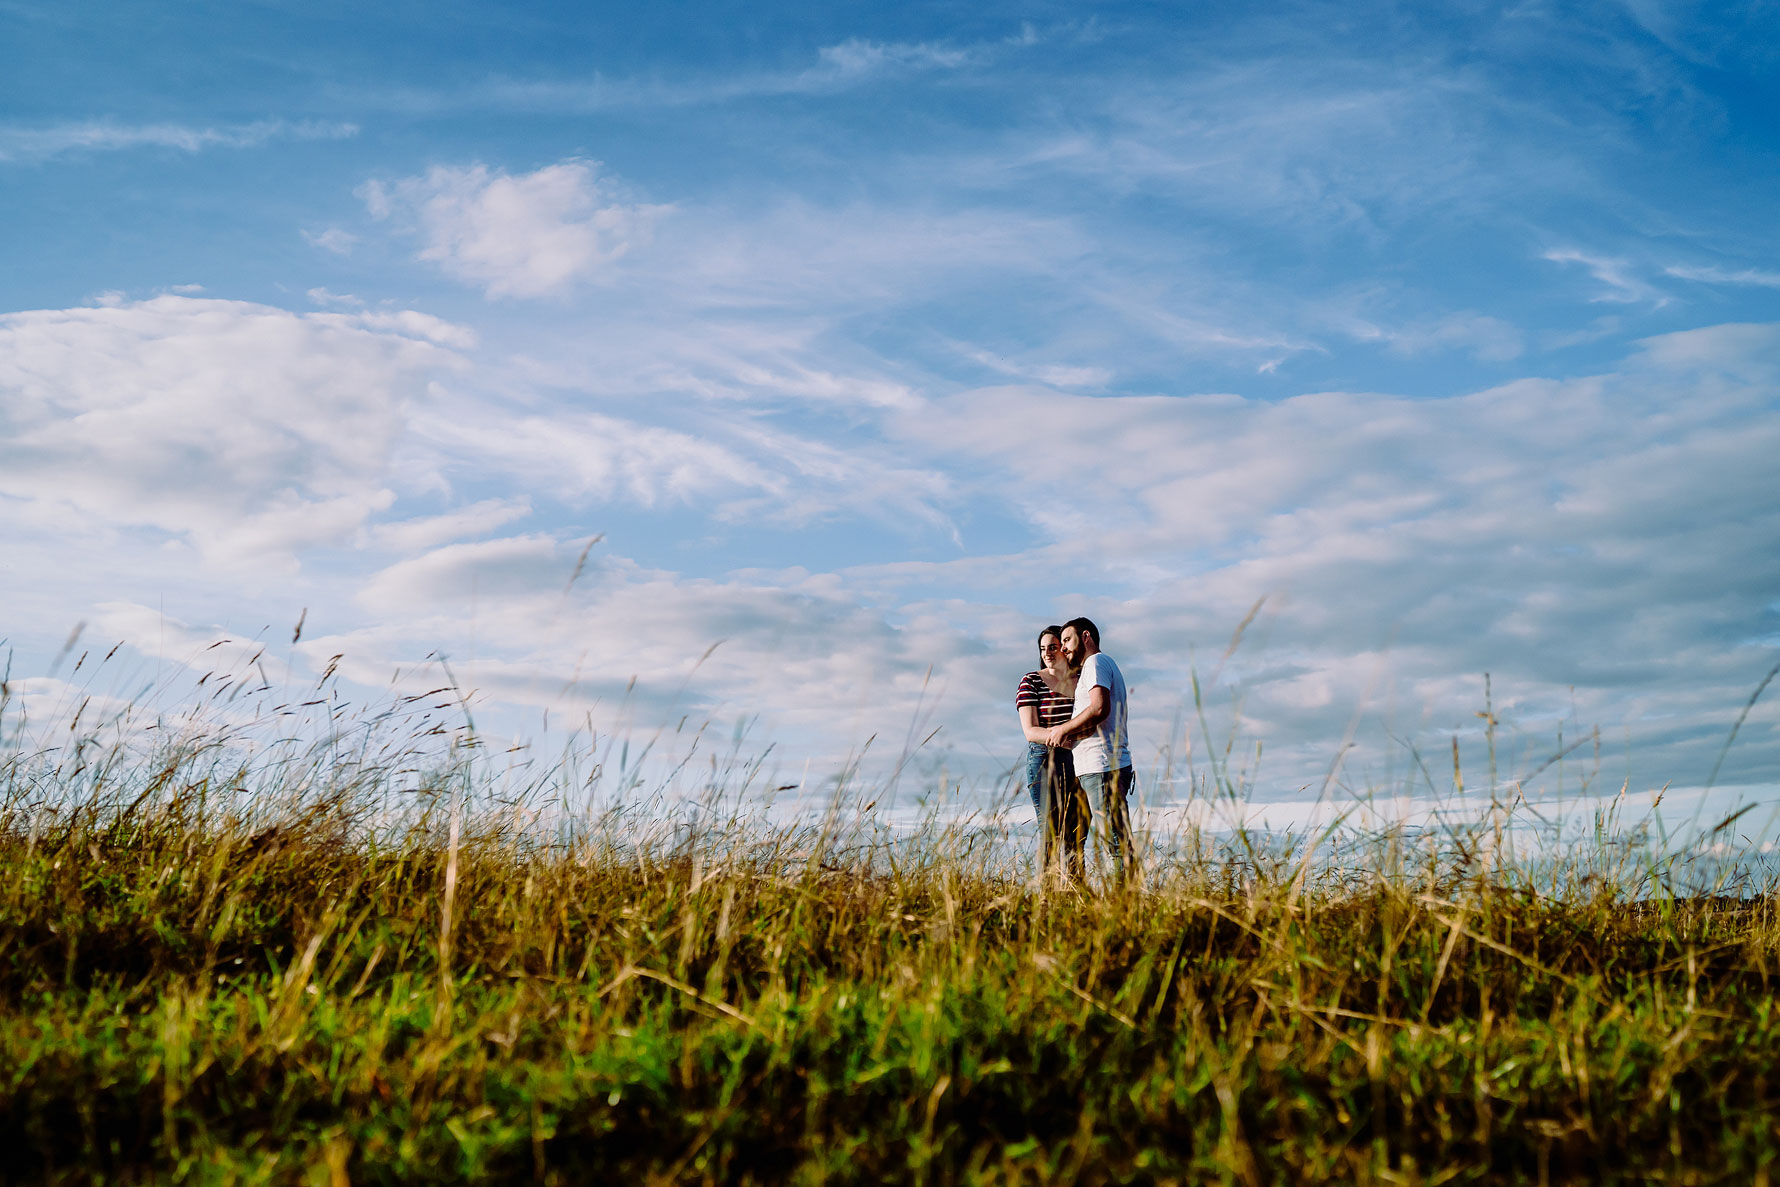 a countryside engagement shoot by Elliot w patching photography